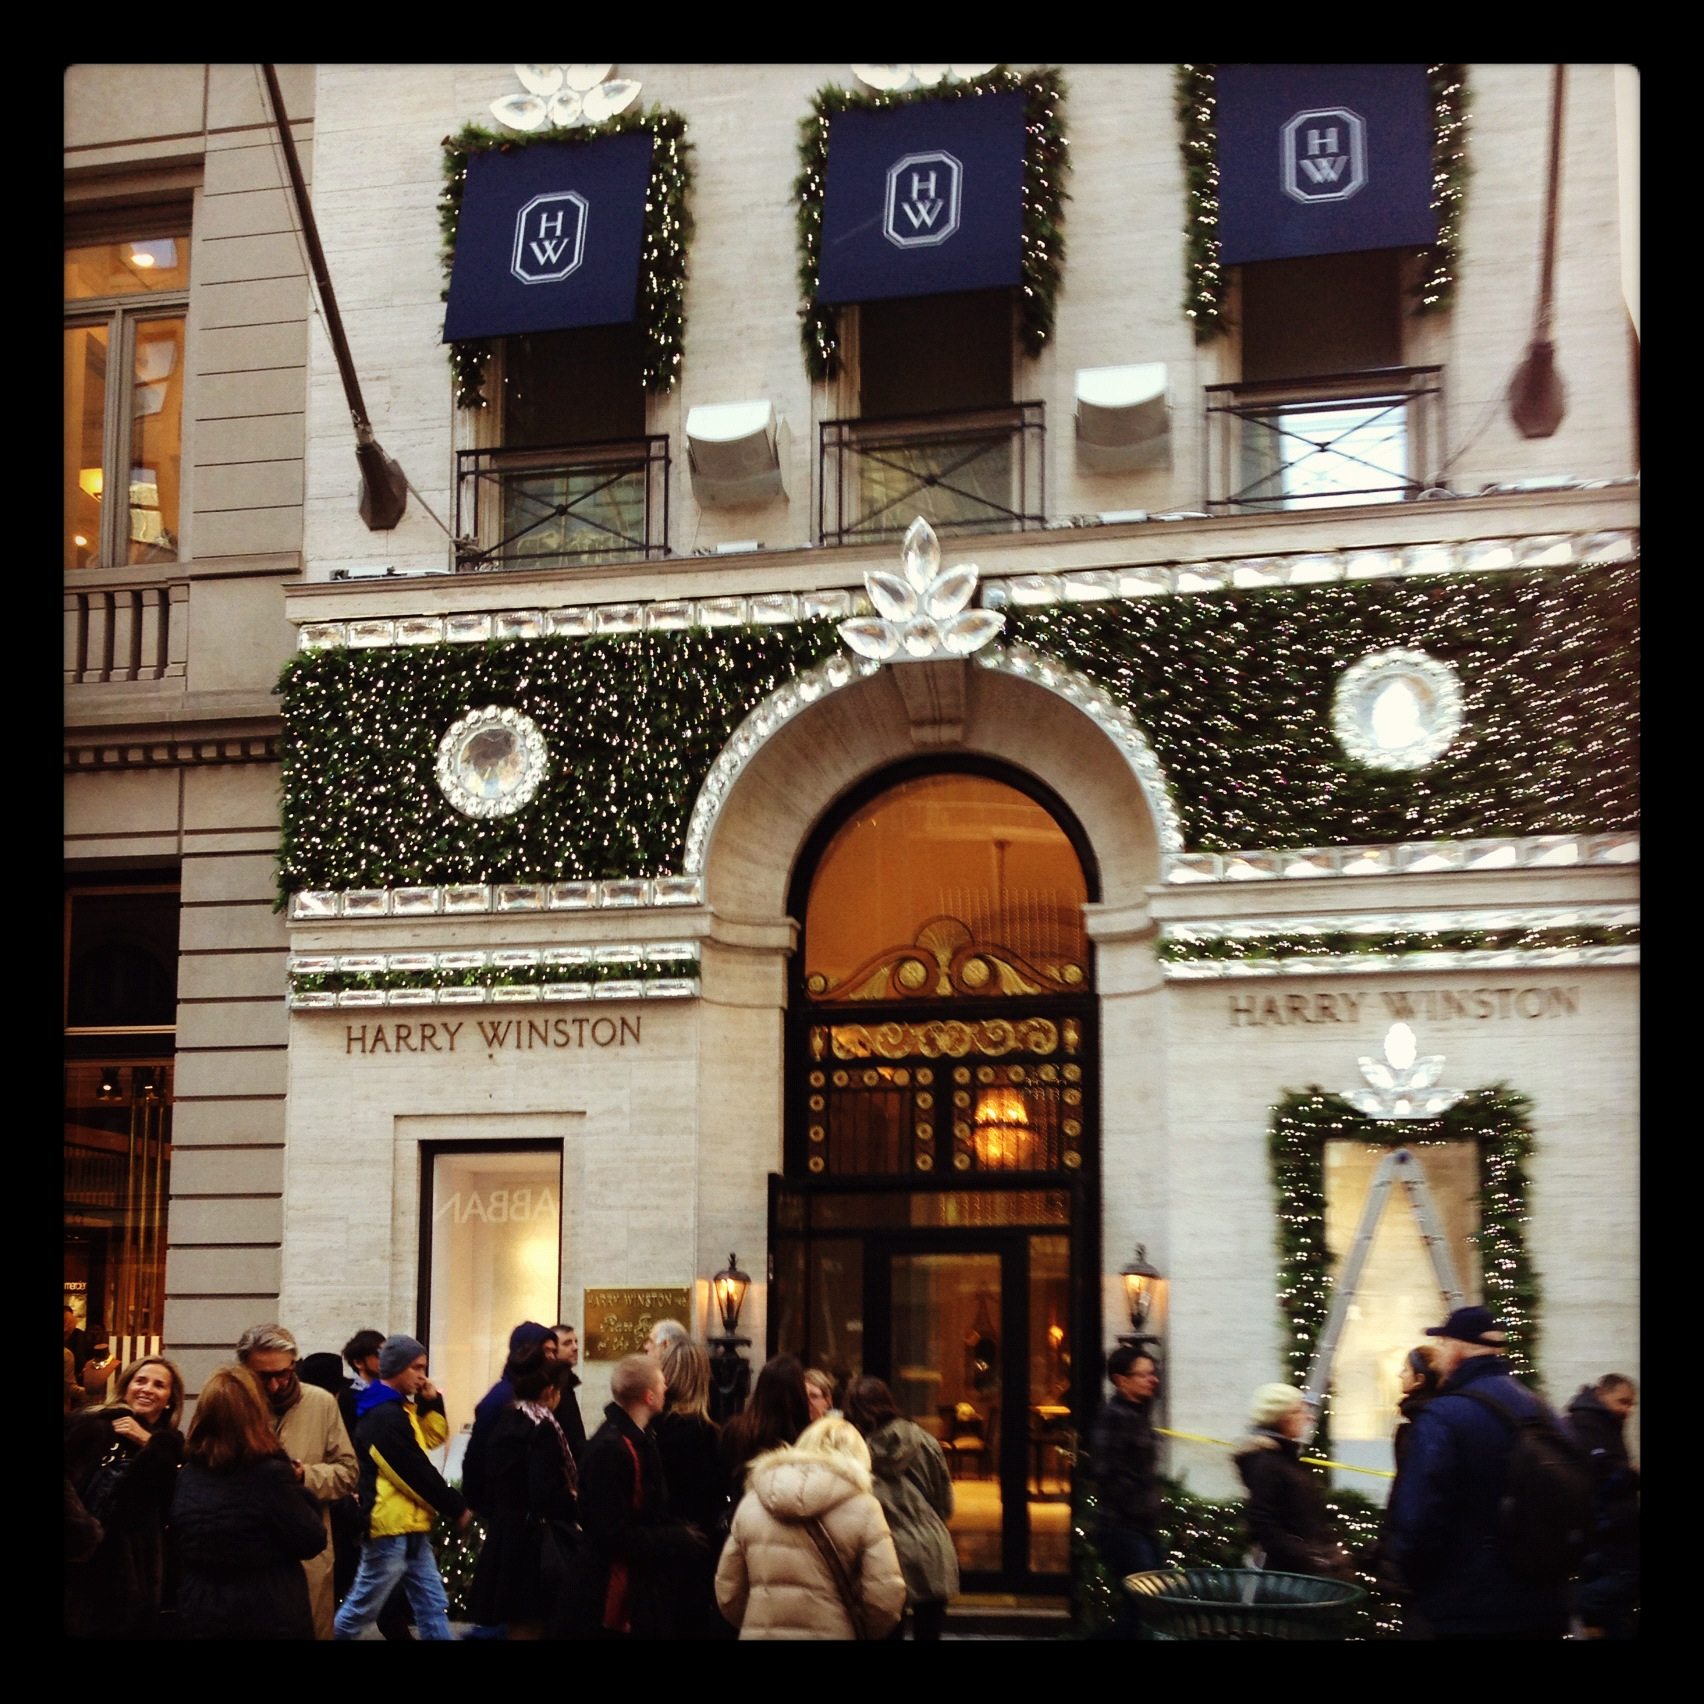 Harry Winston at Christmas